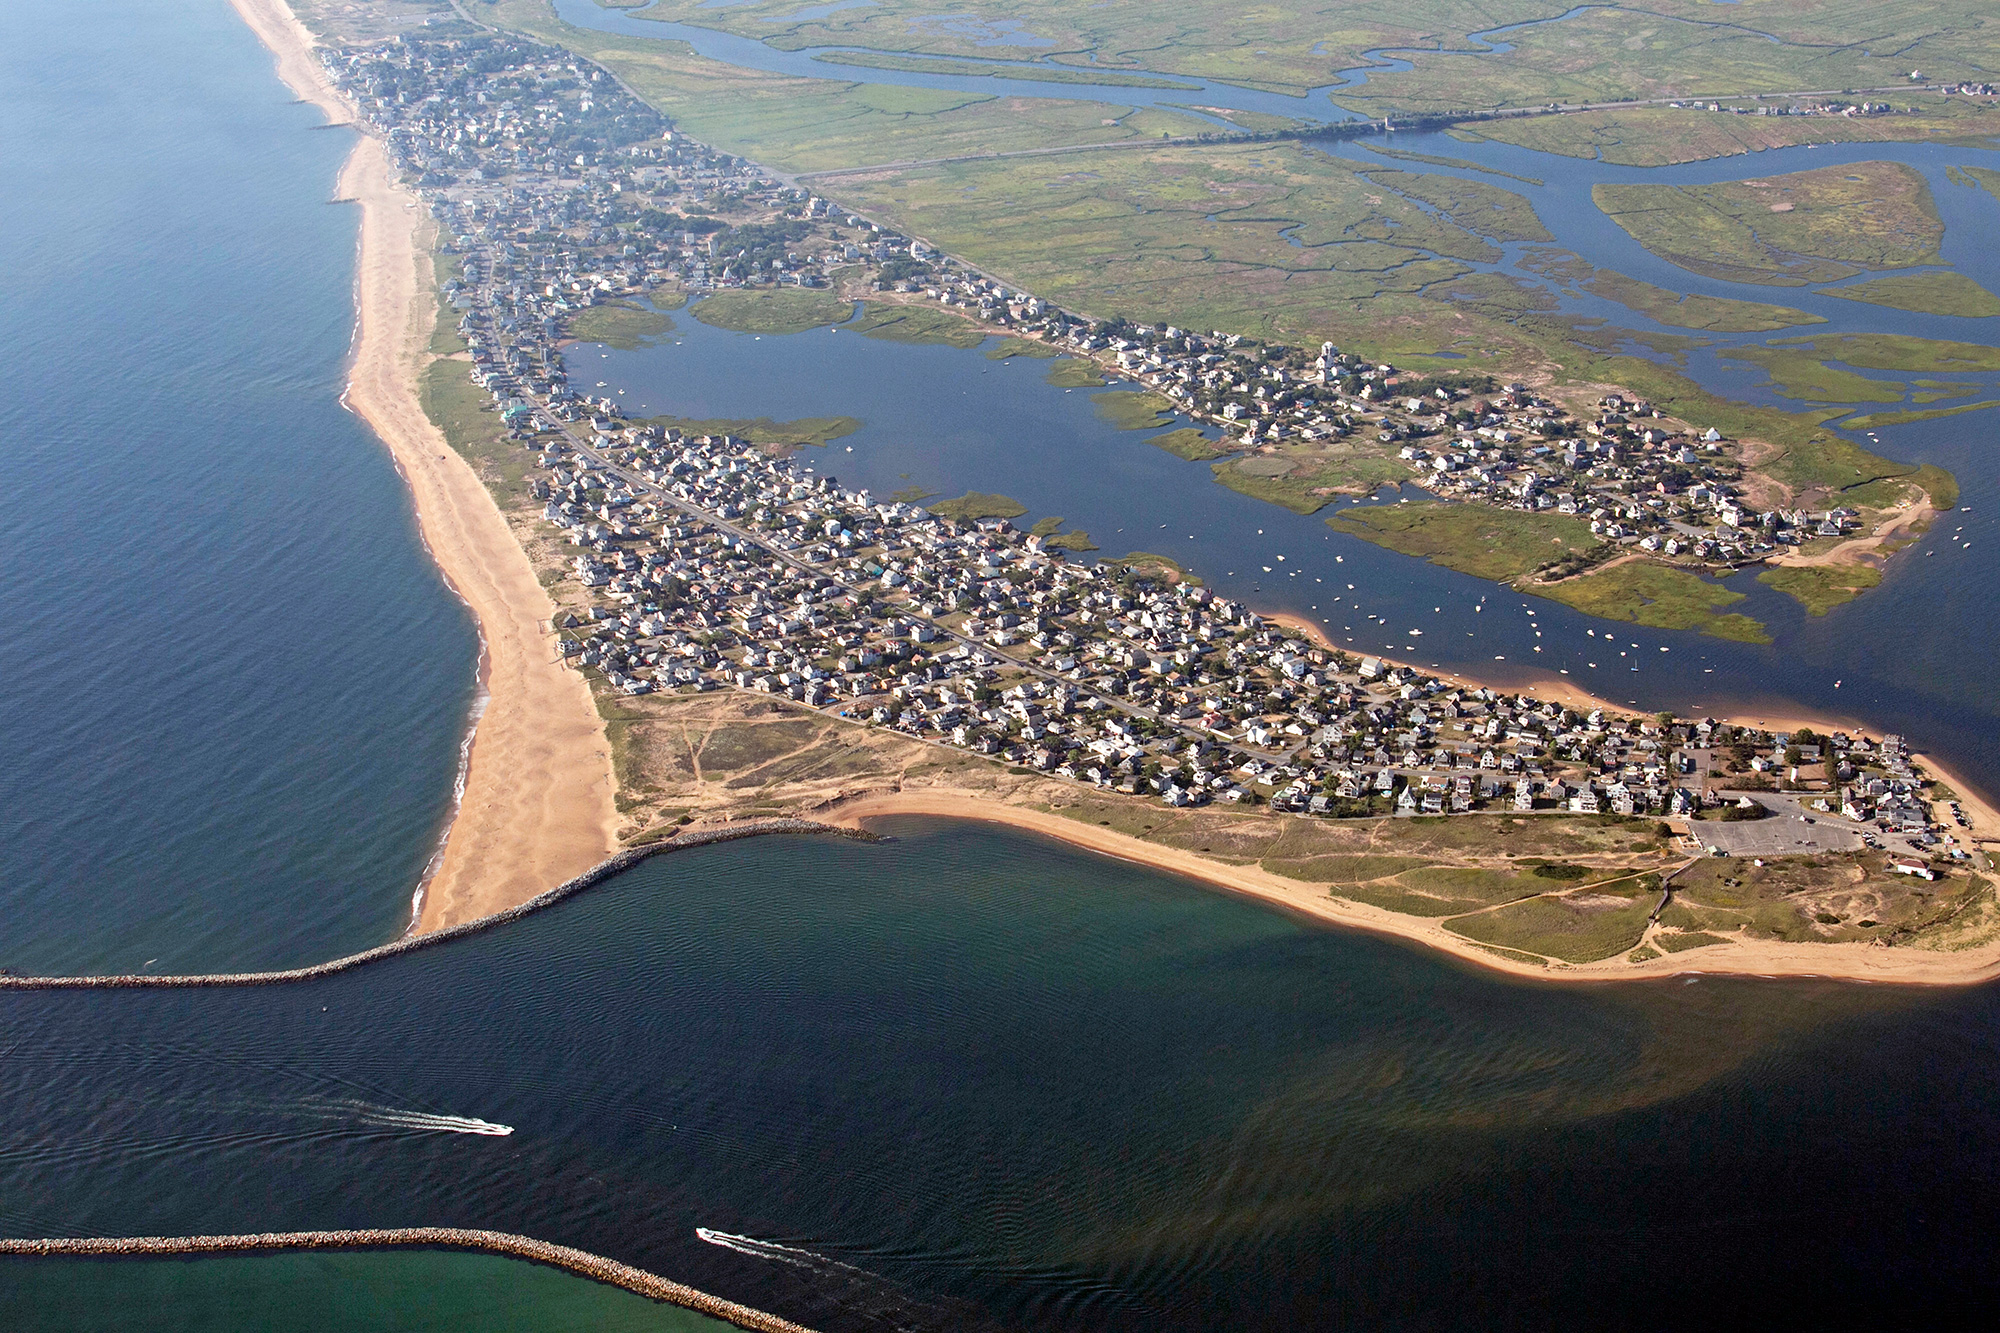 """Across New England, coastal waters are rising due to climate change. Plum Island, on the North Shore of Massachusetts, is particularly vulnerable to major flooding from storm surges and beach erosion. """"Don't build here if you're afraid of losing your house,"""" says longtime resident Verne Fisher. (Photo by Lauren Owens Lambert/GroundTruth)"""